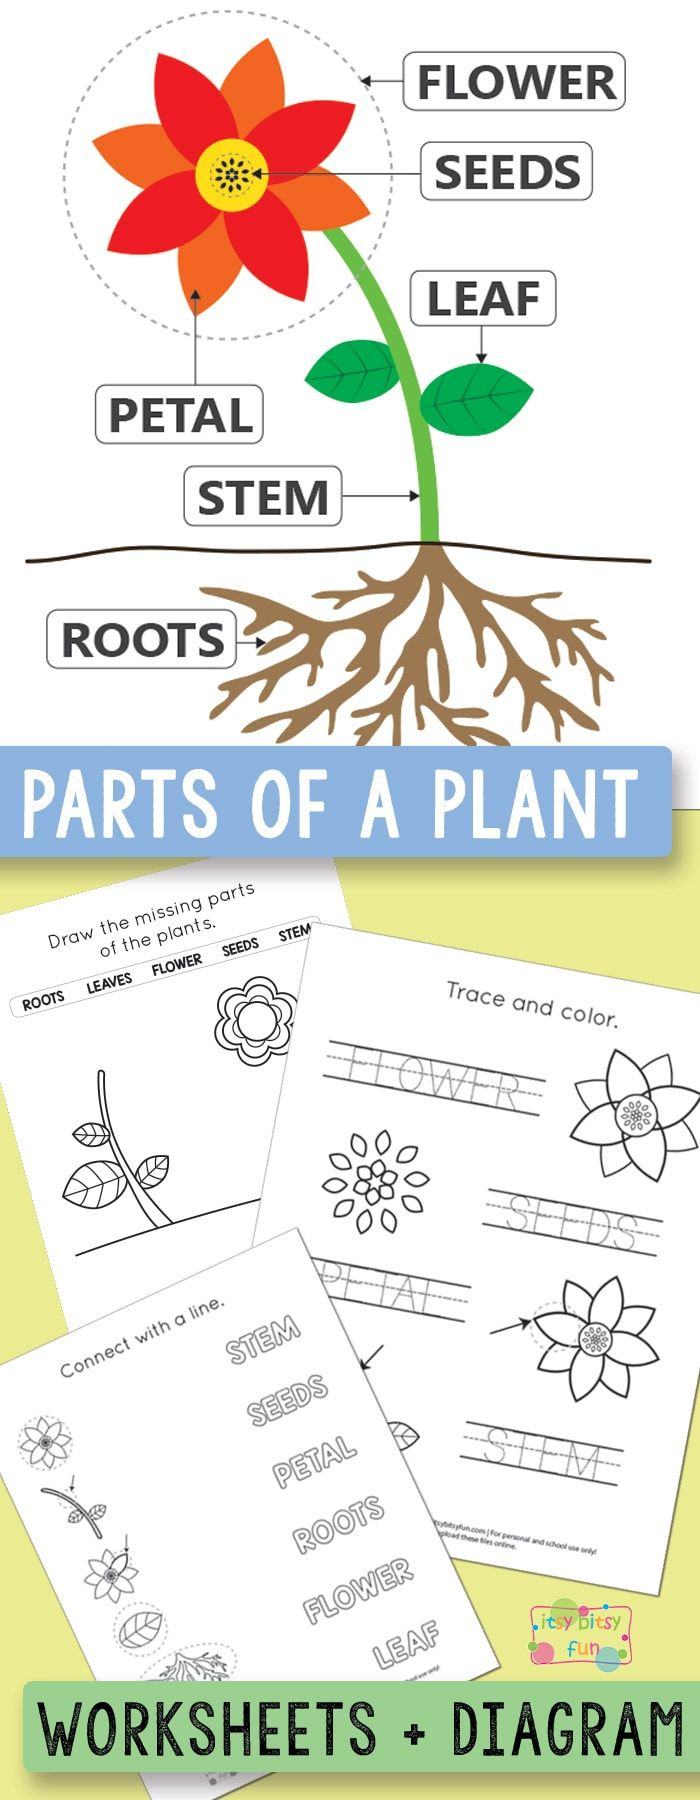 medium resolution of Free Printable Parts of a Plant Worksheets - itsybitsyfun.com   Plants  worksheets